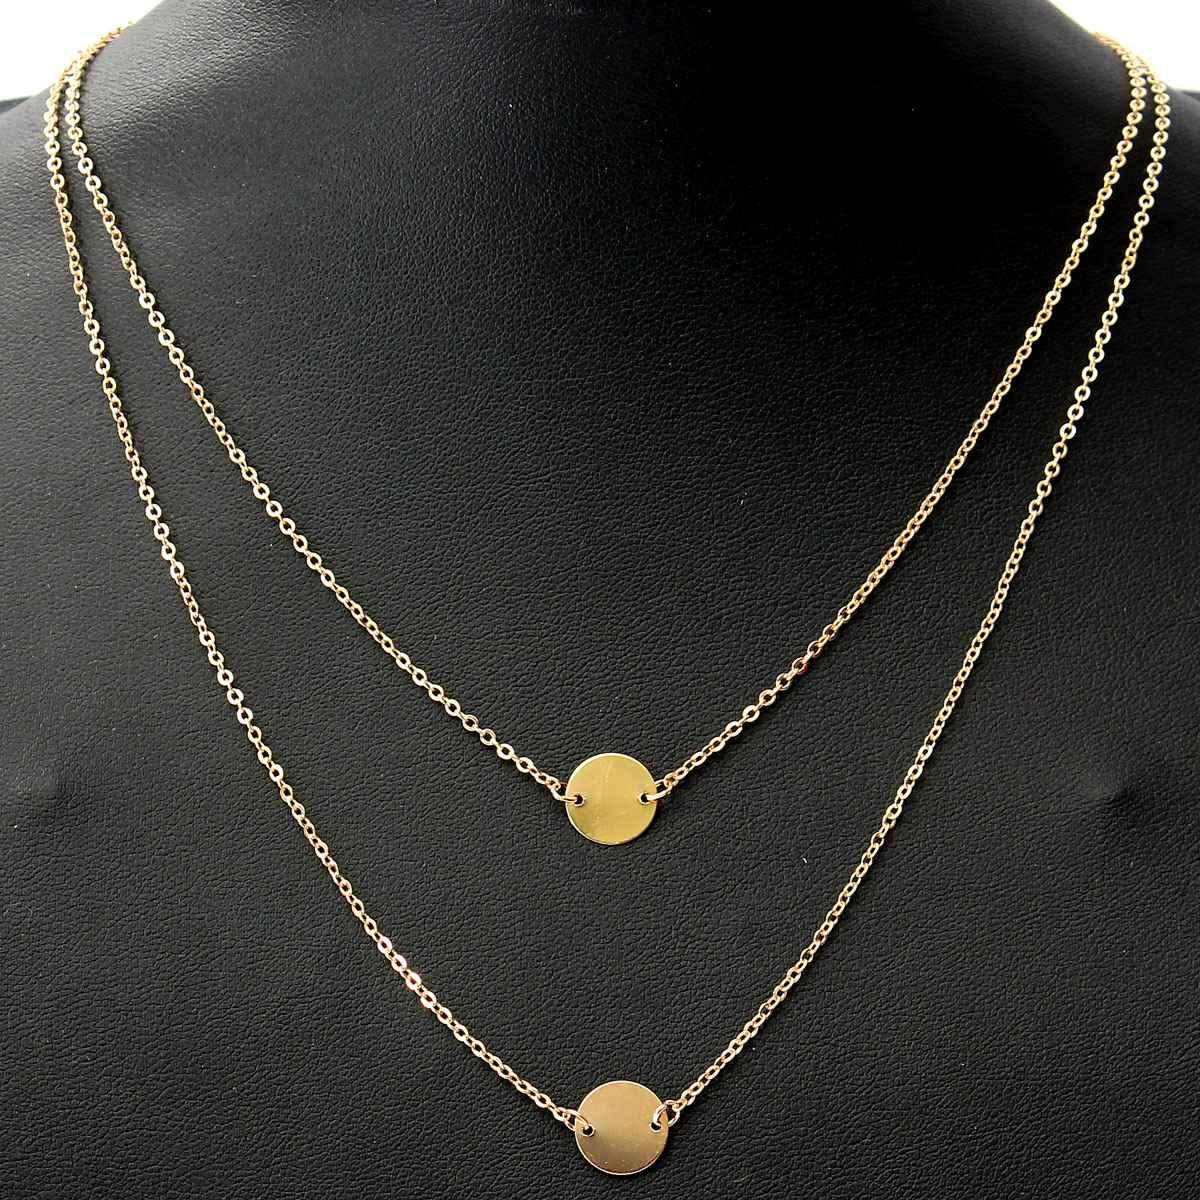 Online cheap women jewelry simple gold double chain necklace tow online cheap women jewelry simple gold double chain necklace tow little golded round pendant delicate y and v necklaces tiny necklace by zaixia166 dhgate aloadofball Image collections